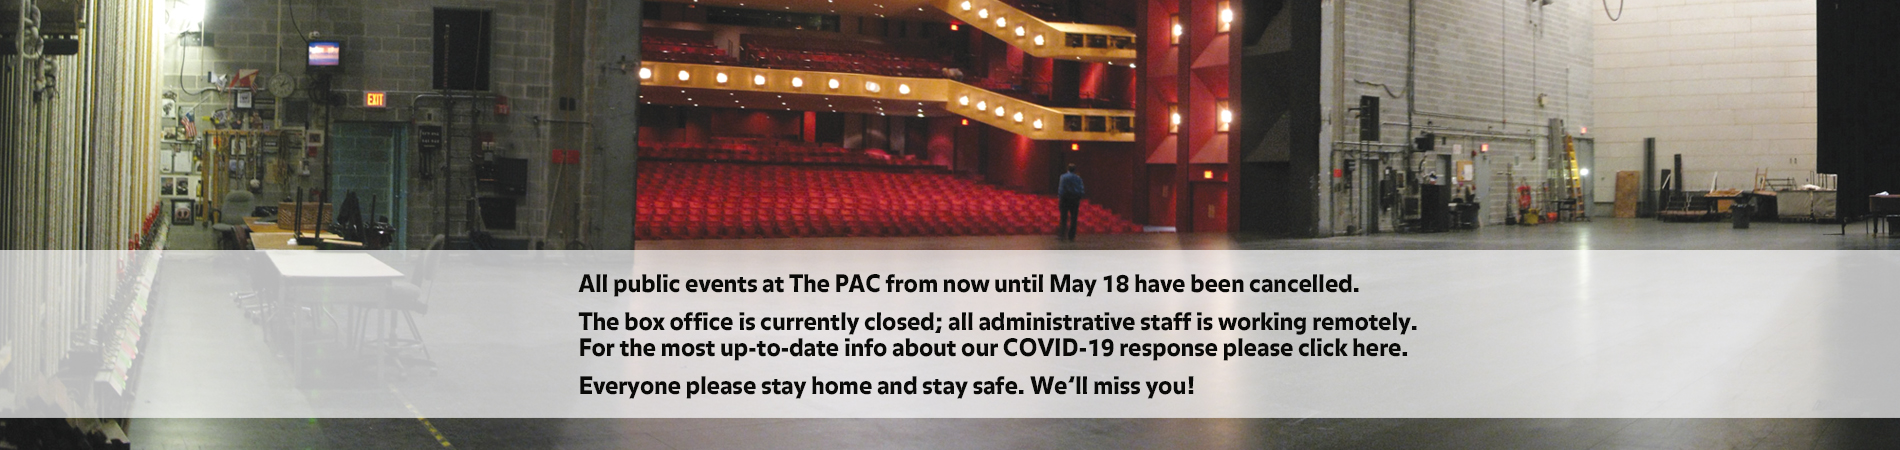 Concert Hall stage with event cancellation notice